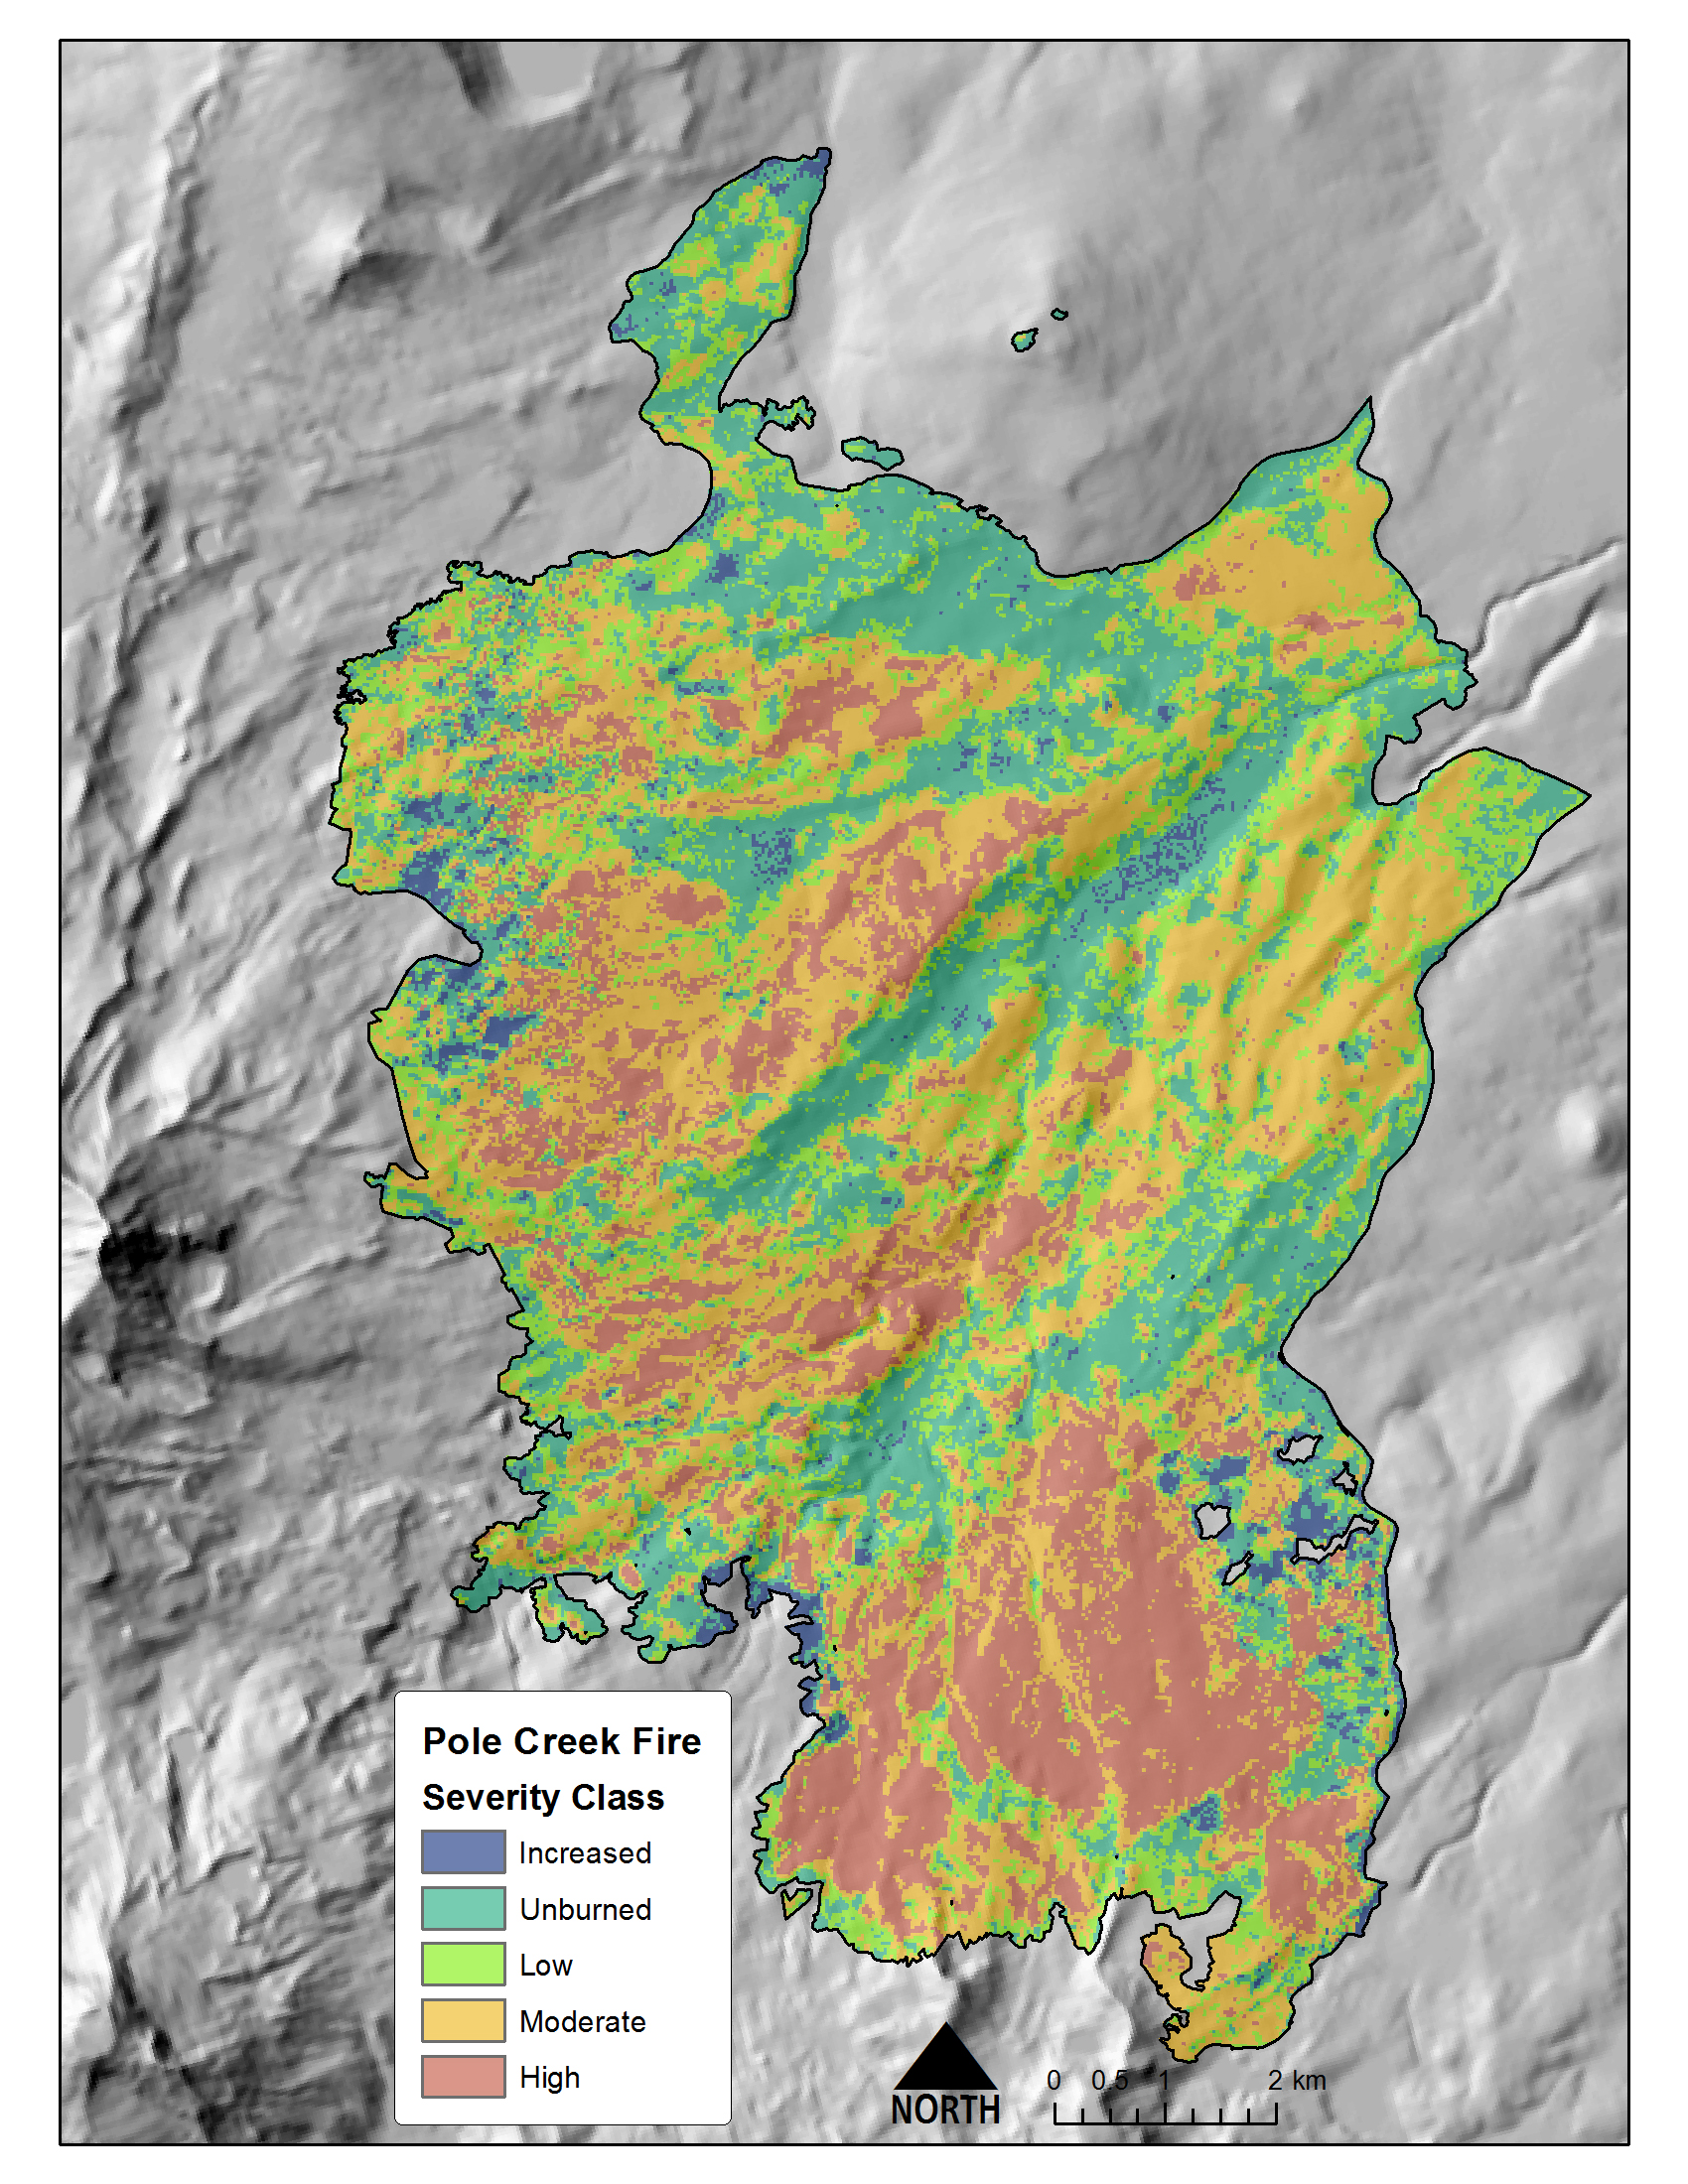 Pre-fire and post-fire lidar-derived burn severity for the Pole Creek Fire, 2012. North is oriented toward the top of the image.